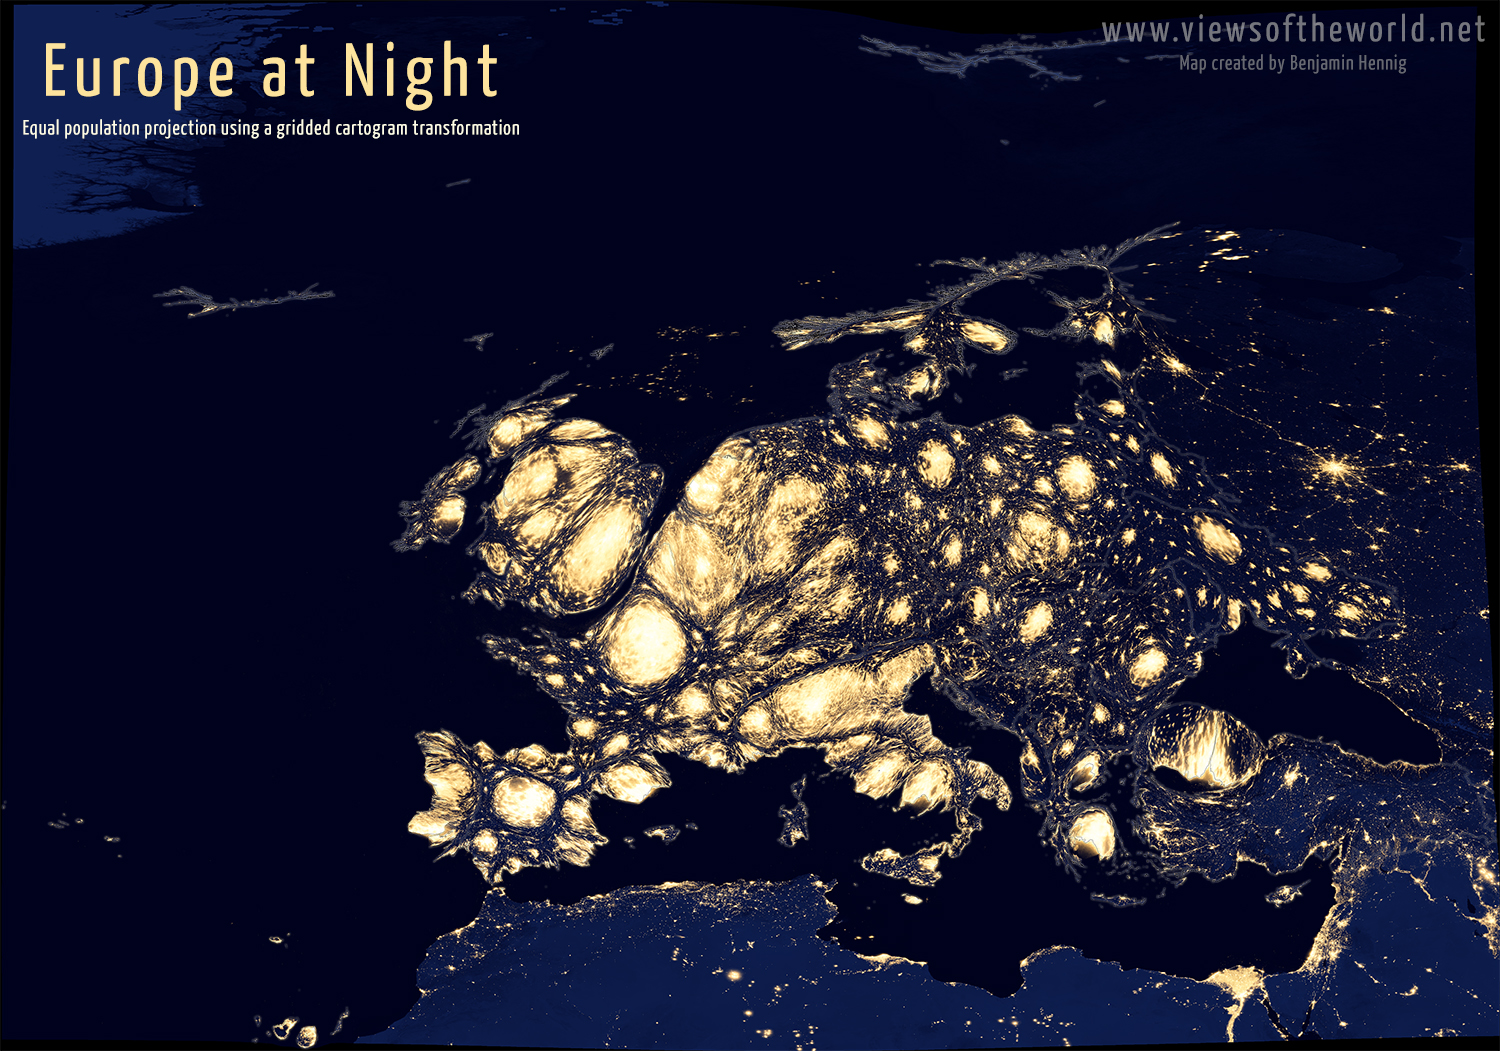 Europe at night views of the world equal population projection map of europe at night gumiabroncs Choice Image